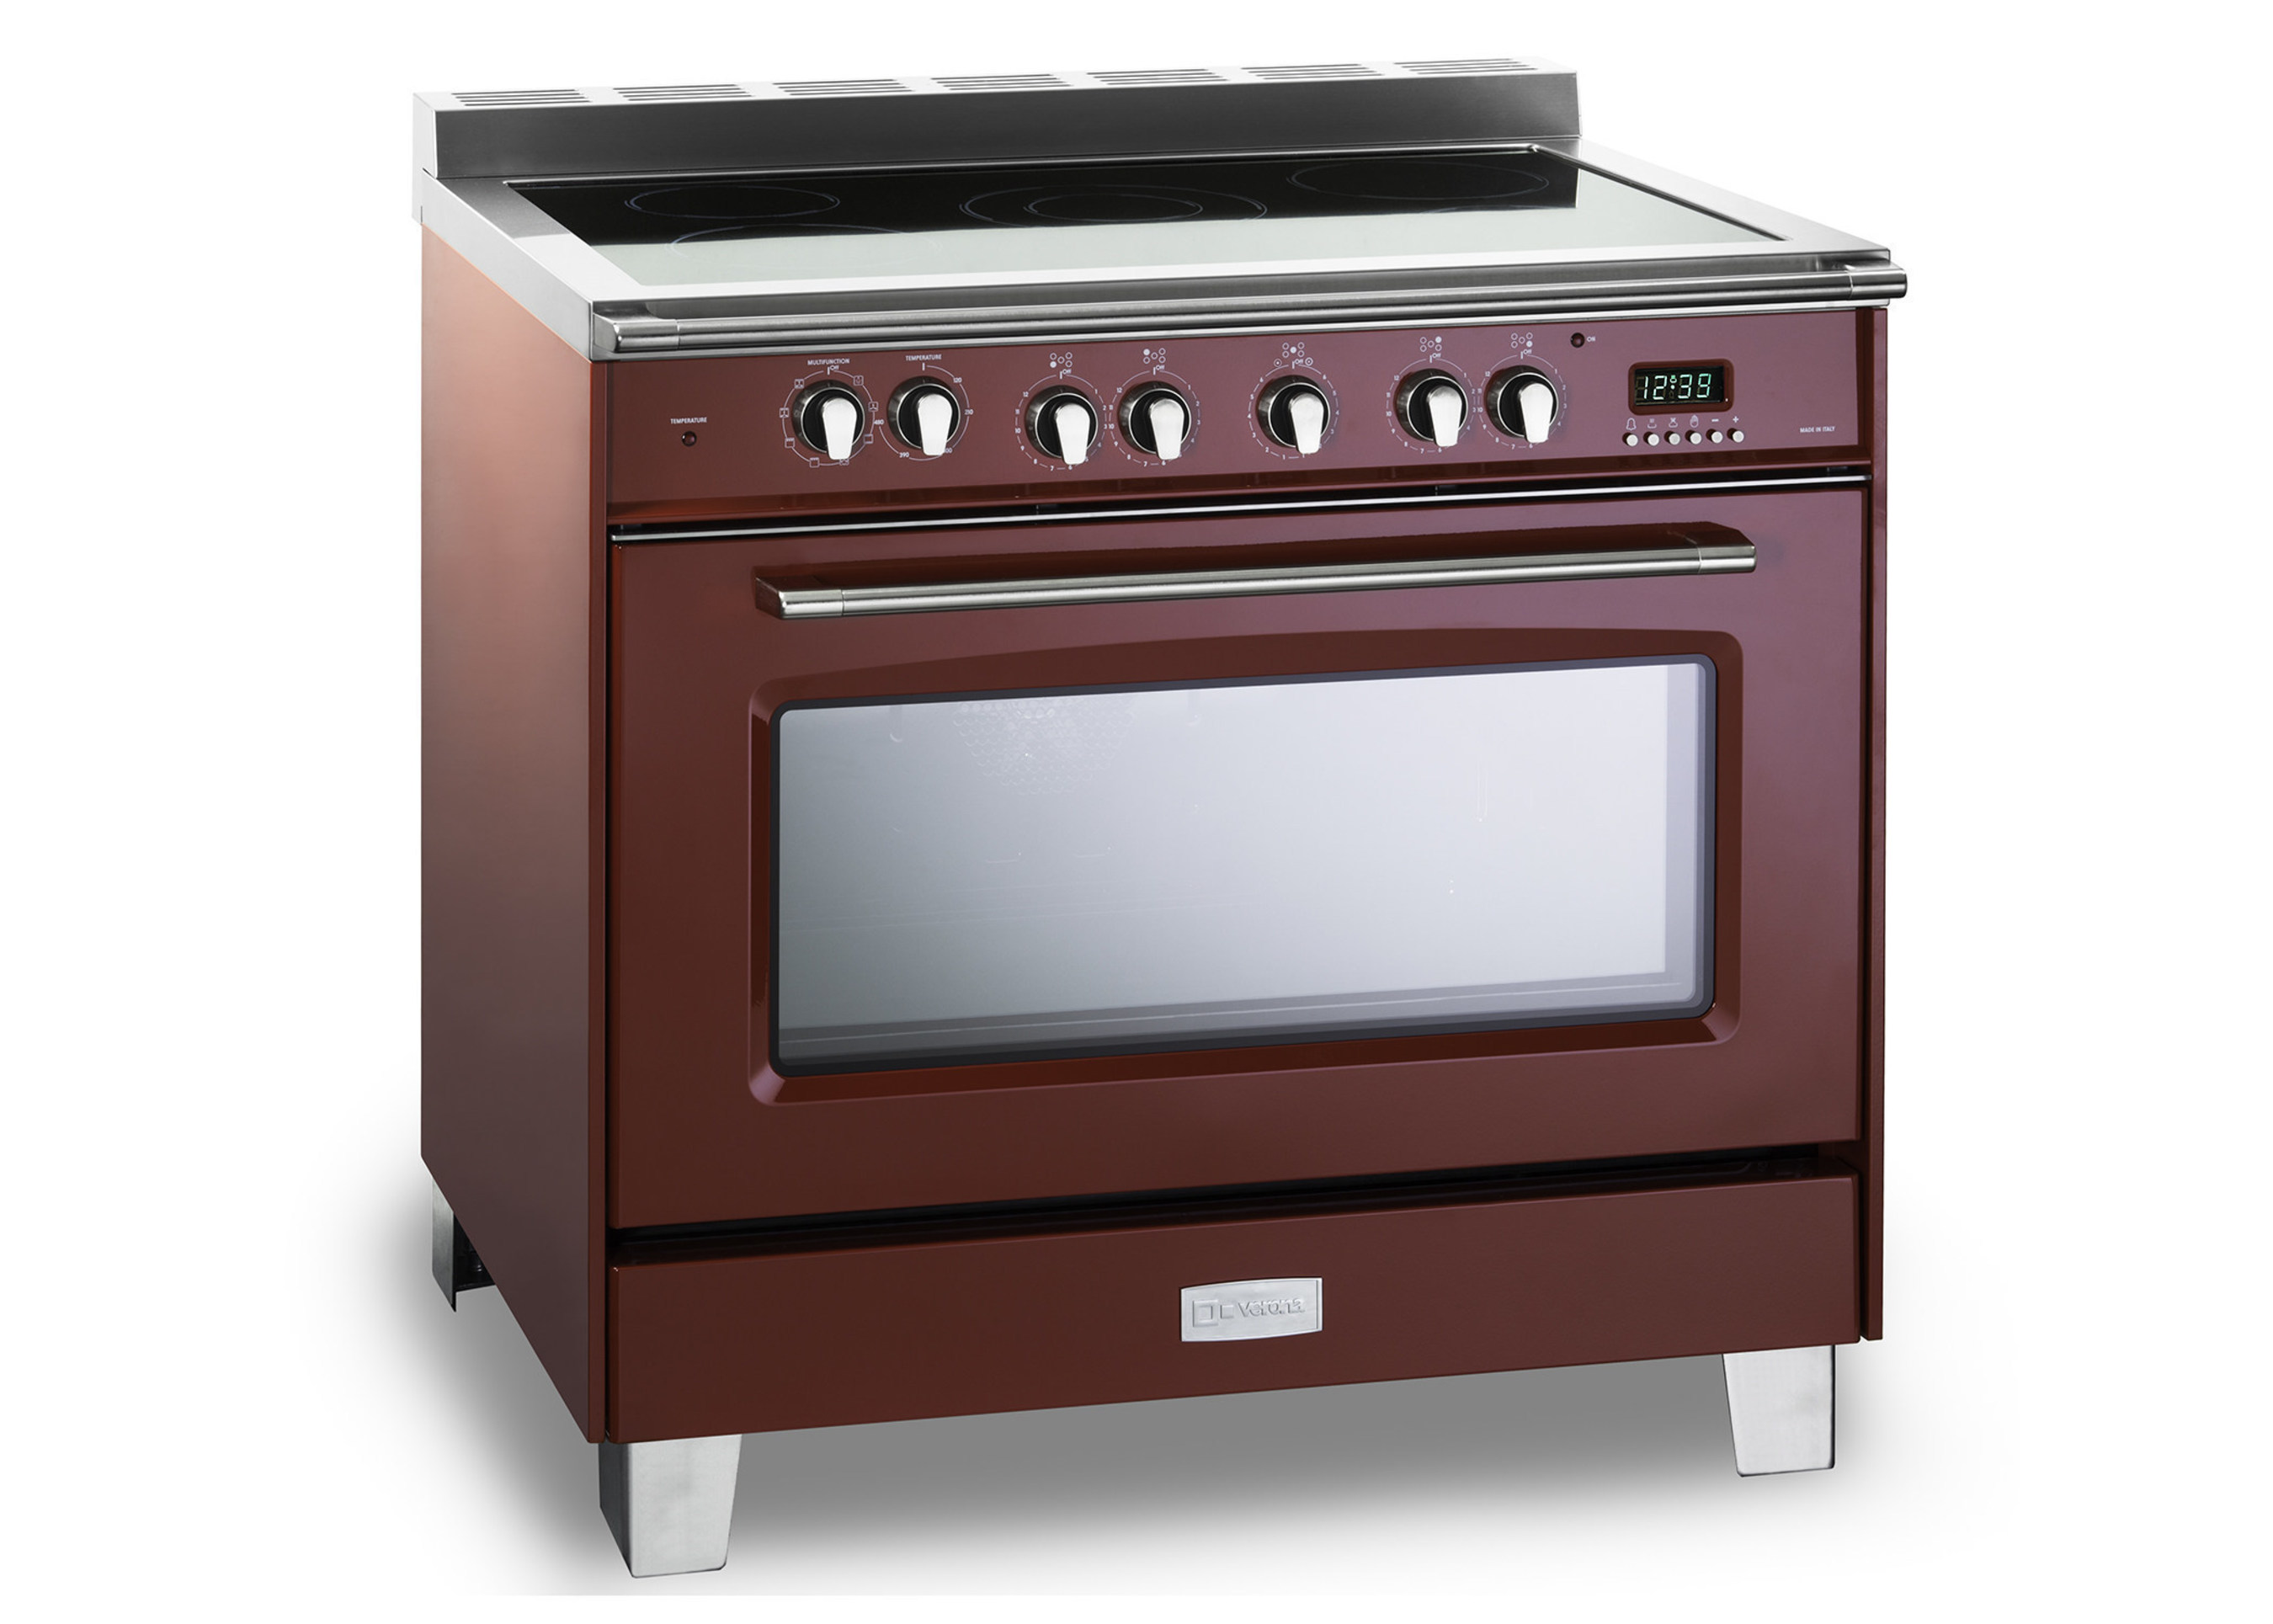 Verona Classic professional range series now available in all Electric